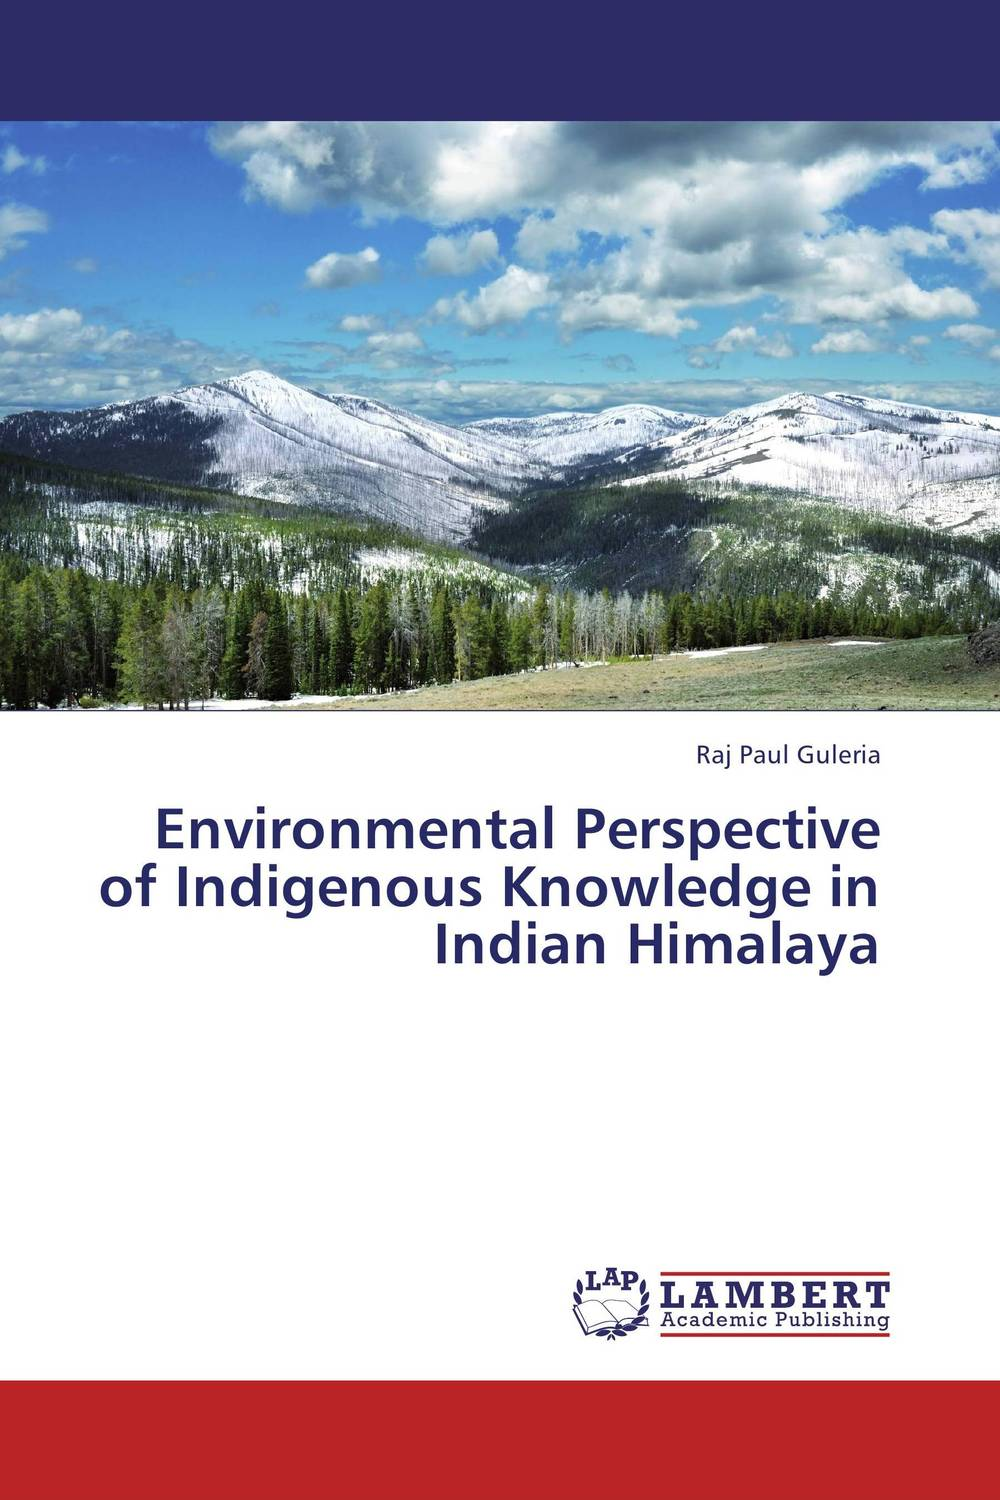 Environmental Perspective of Indigenous Knowledge in Indian Himalaya indian himalaya 1 350 000